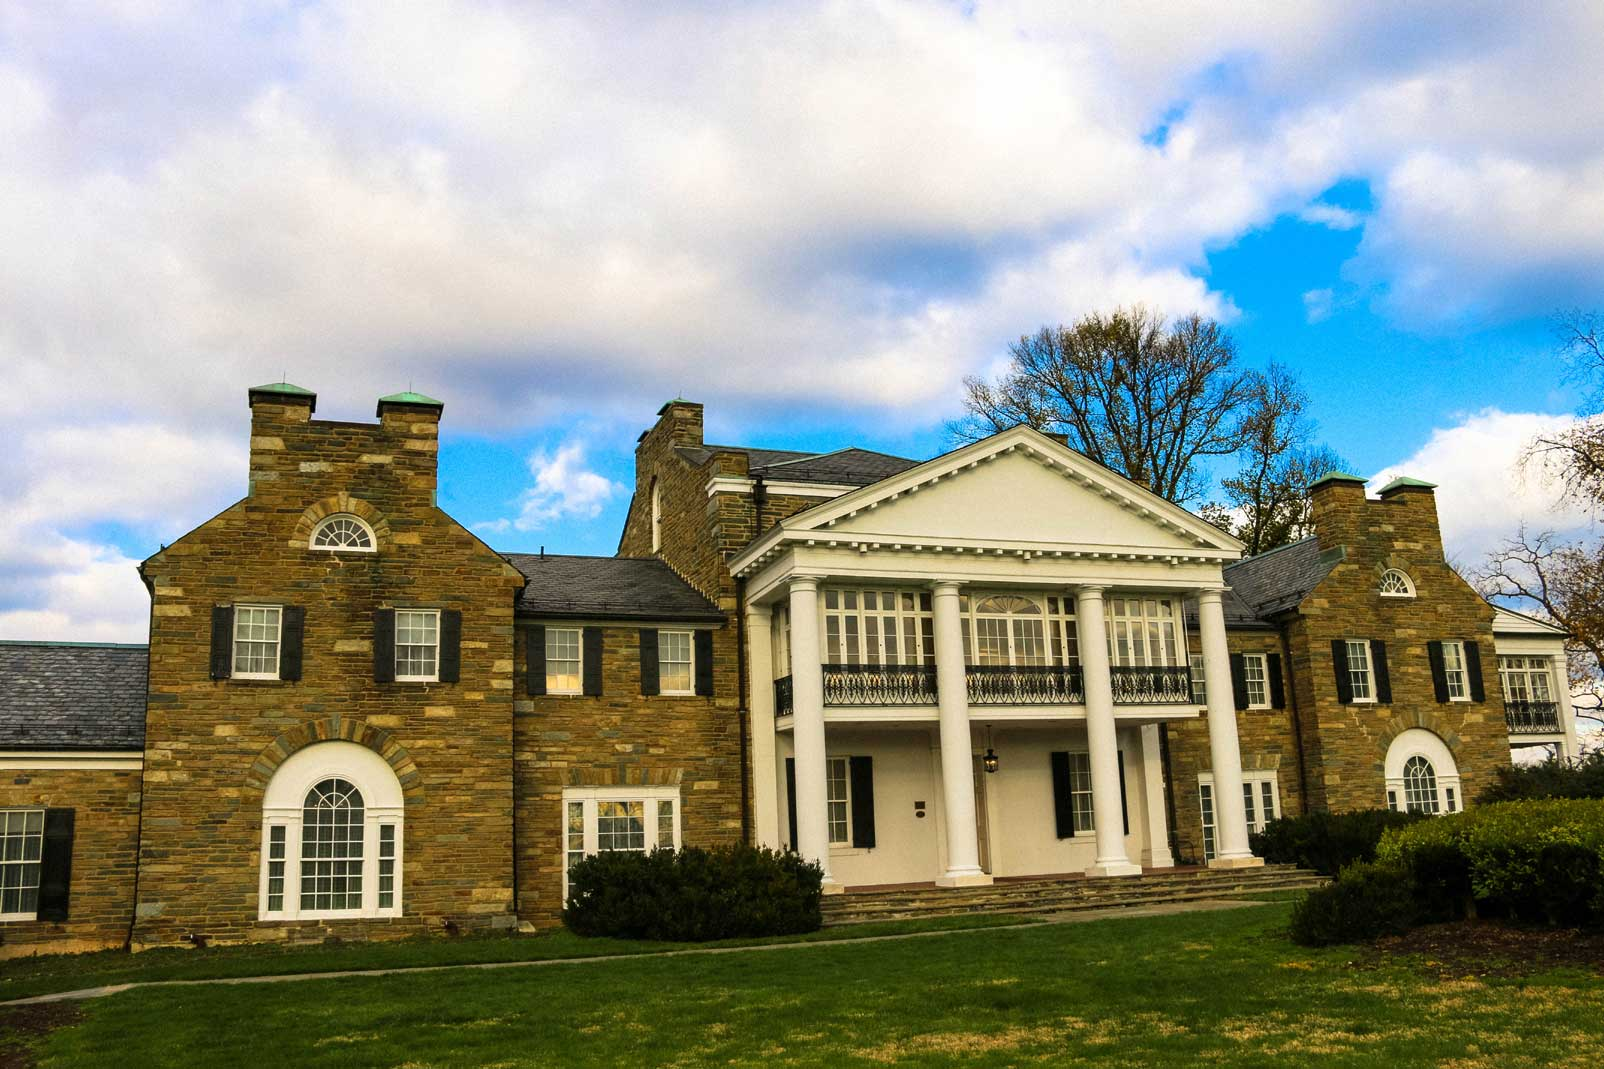 Glenview Mansion in Rockville, MD